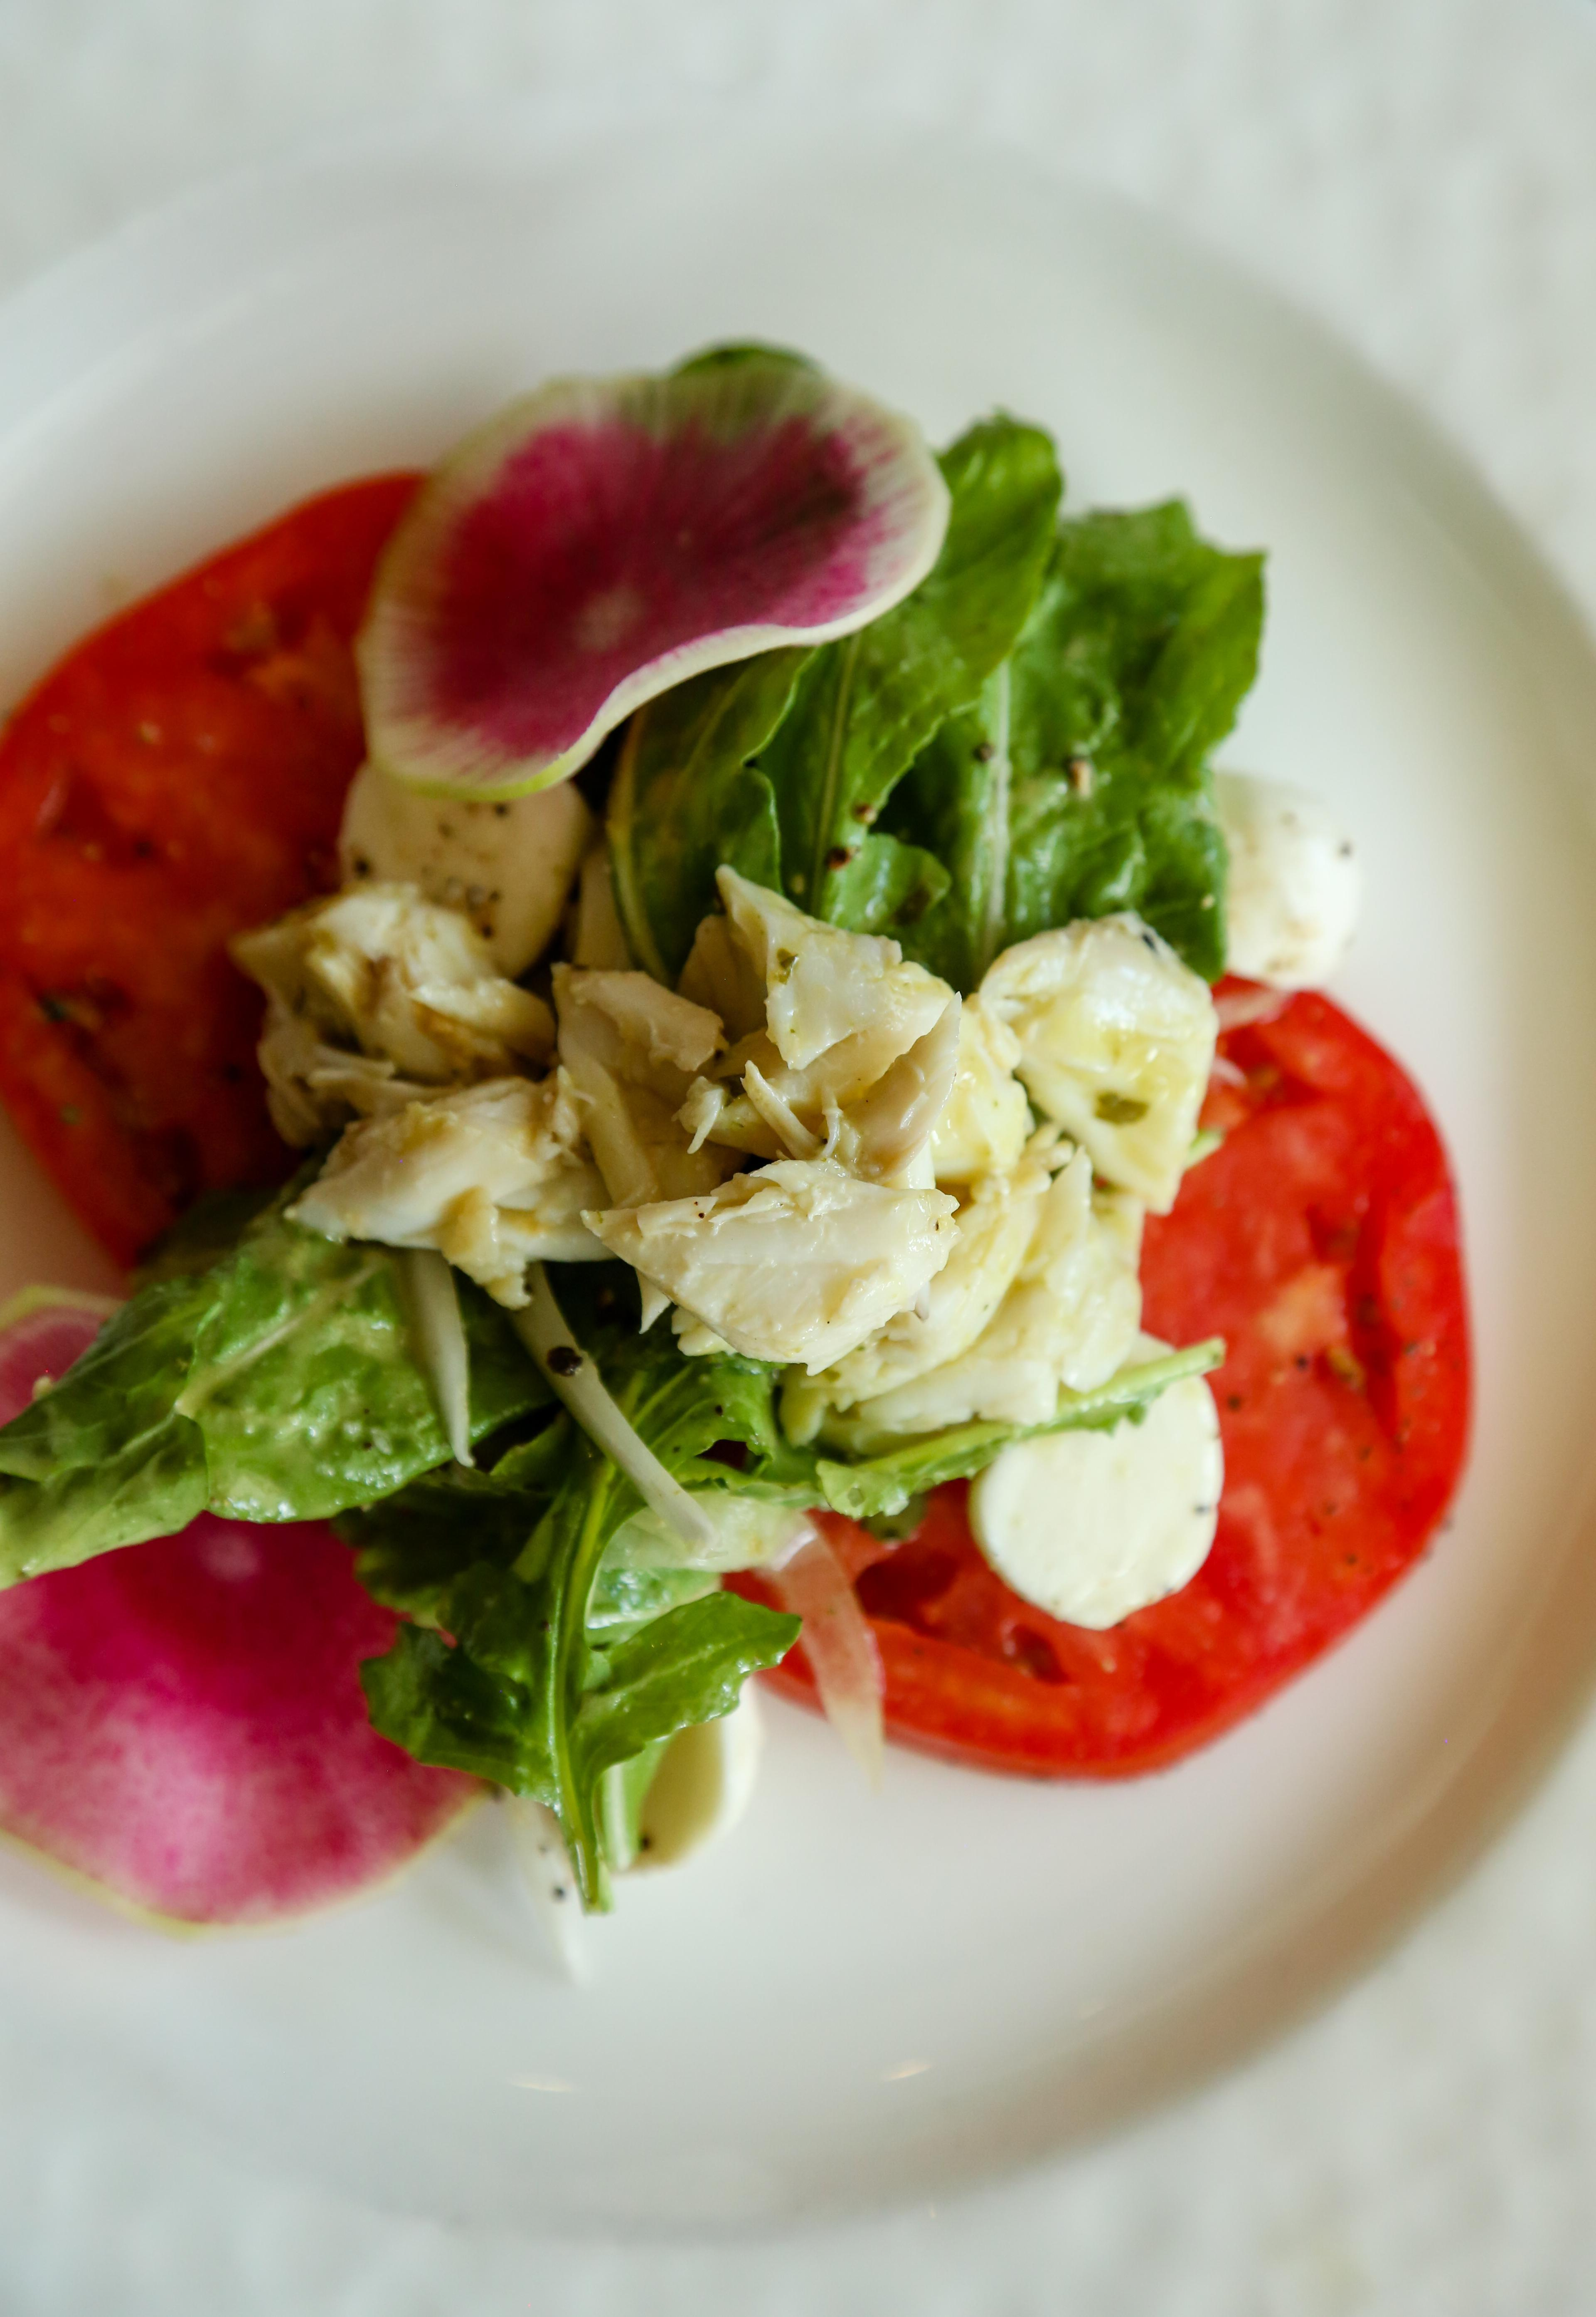 Louisiana Crab & Creole Tomato Salad Photo